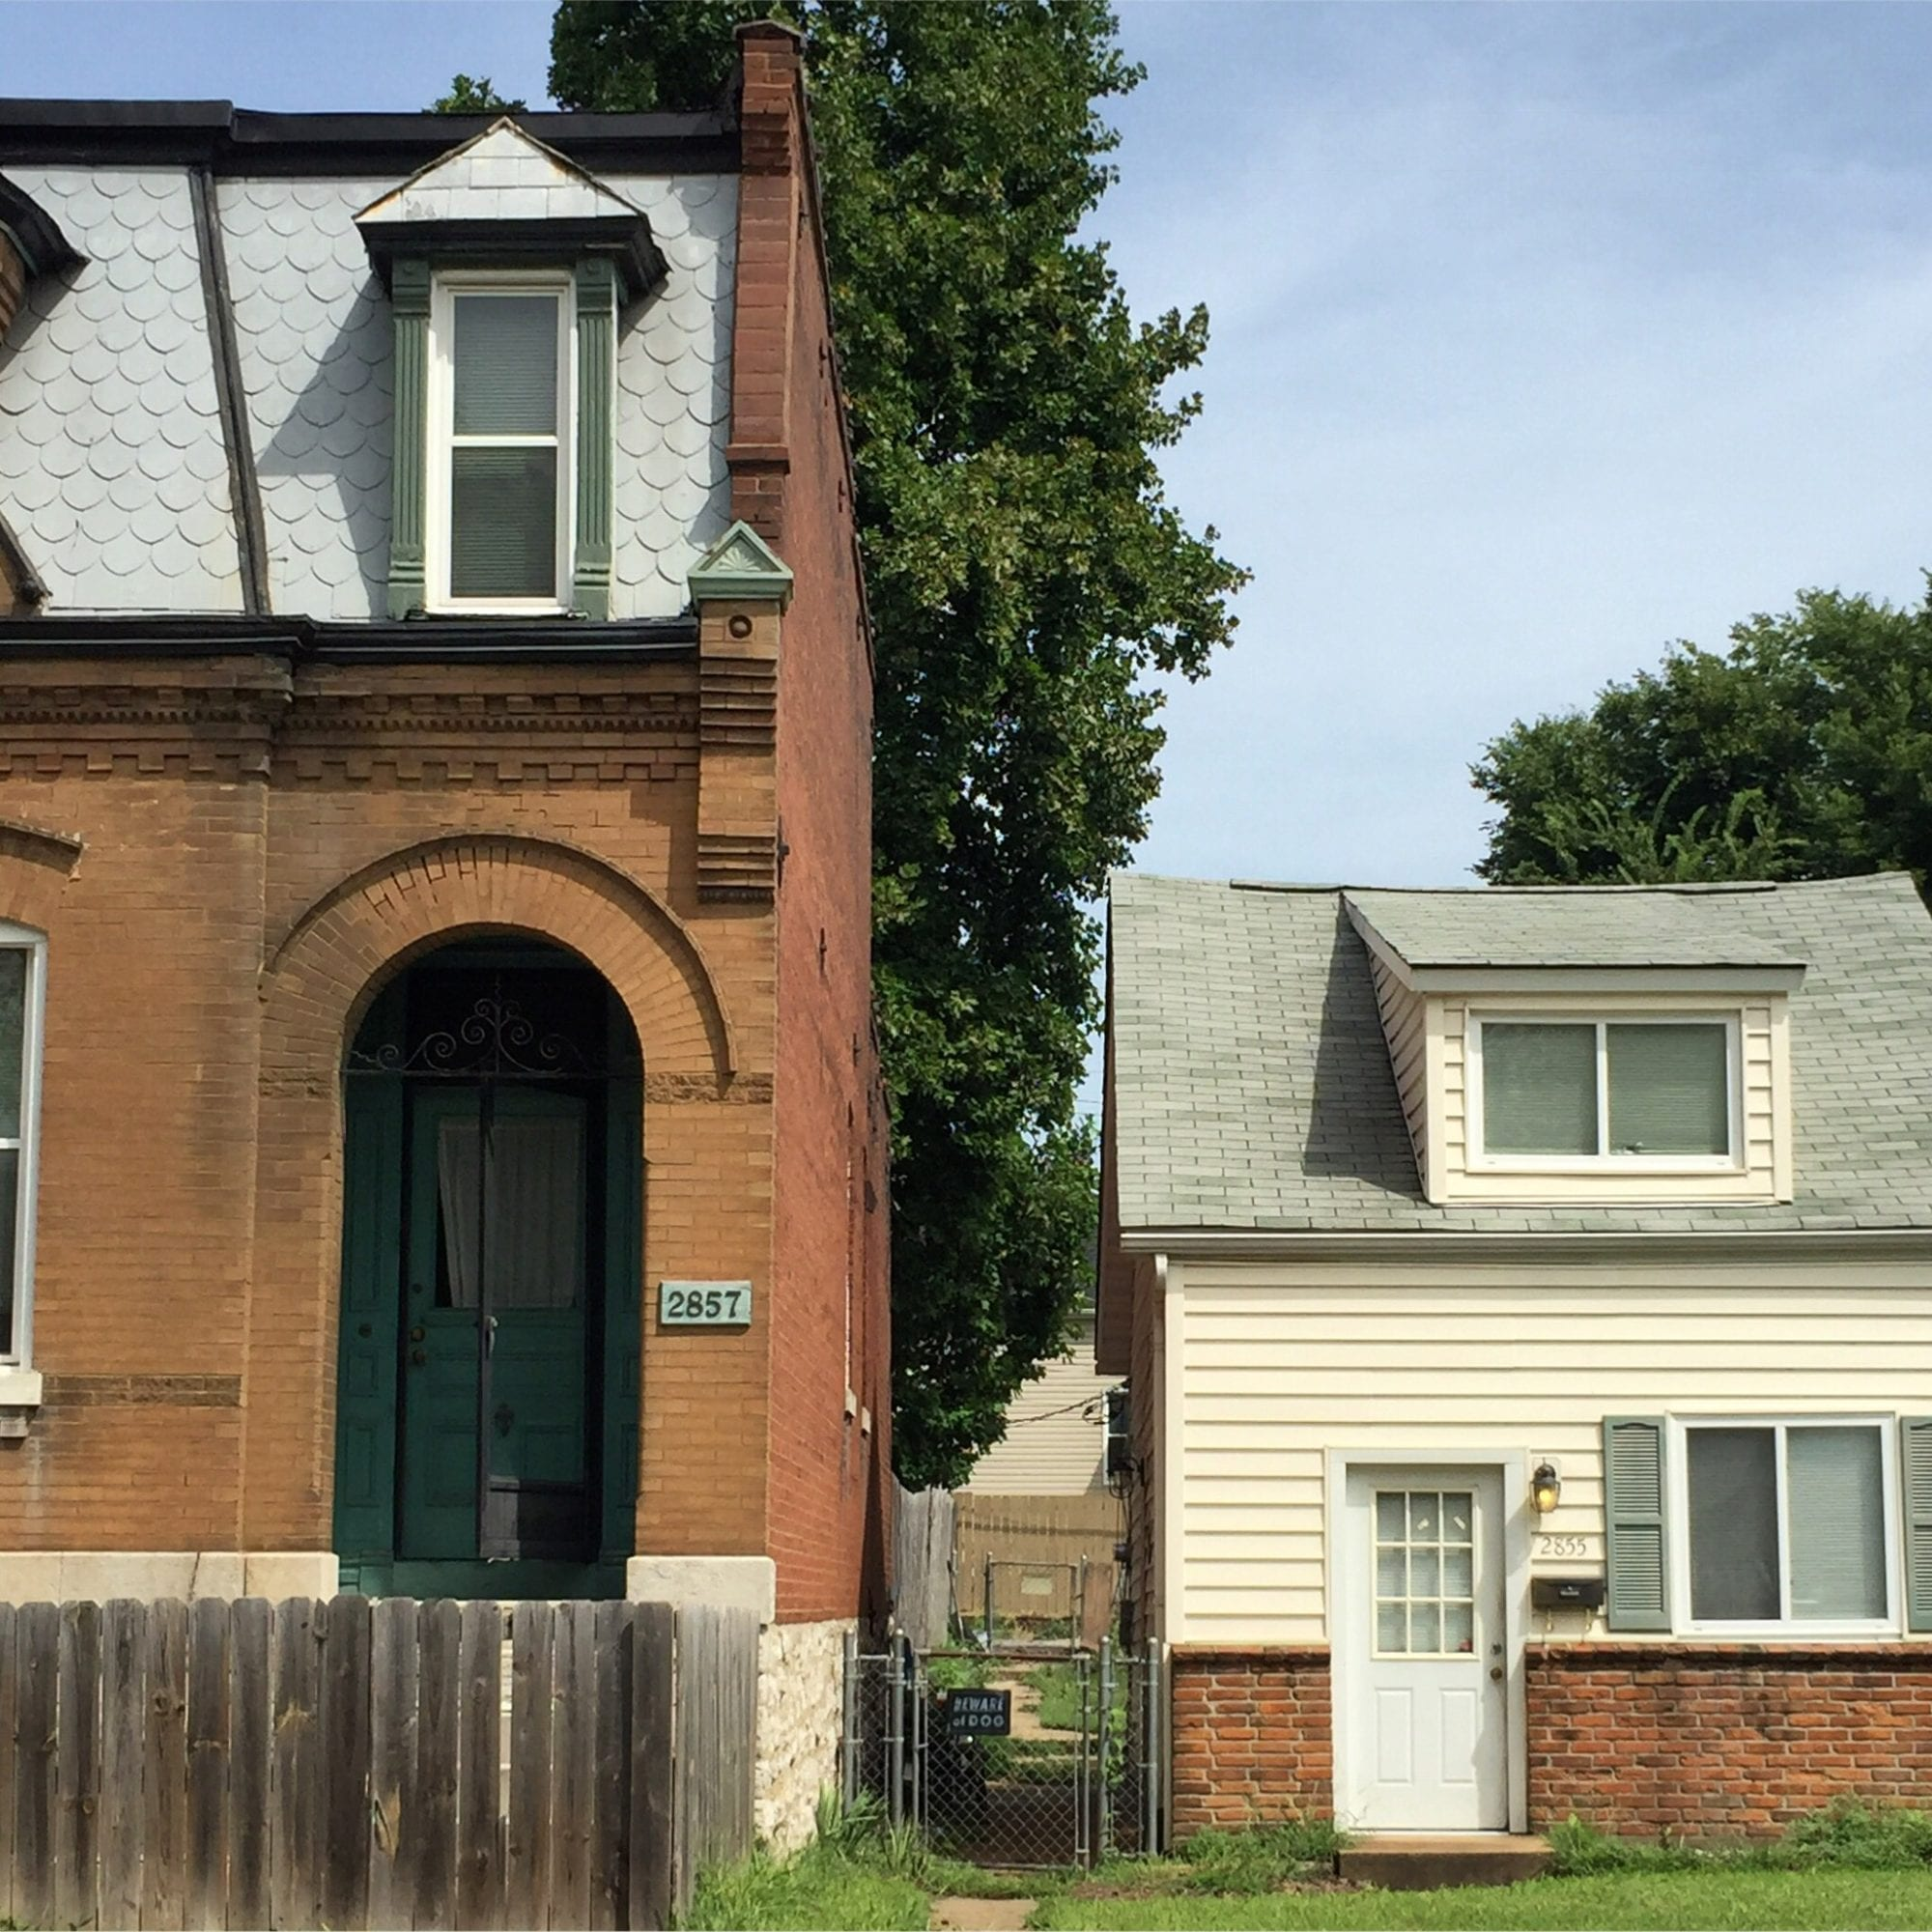 Contrasting architectural styles in Dutchtown, St. Louis. Photo by Josh Burbridge.